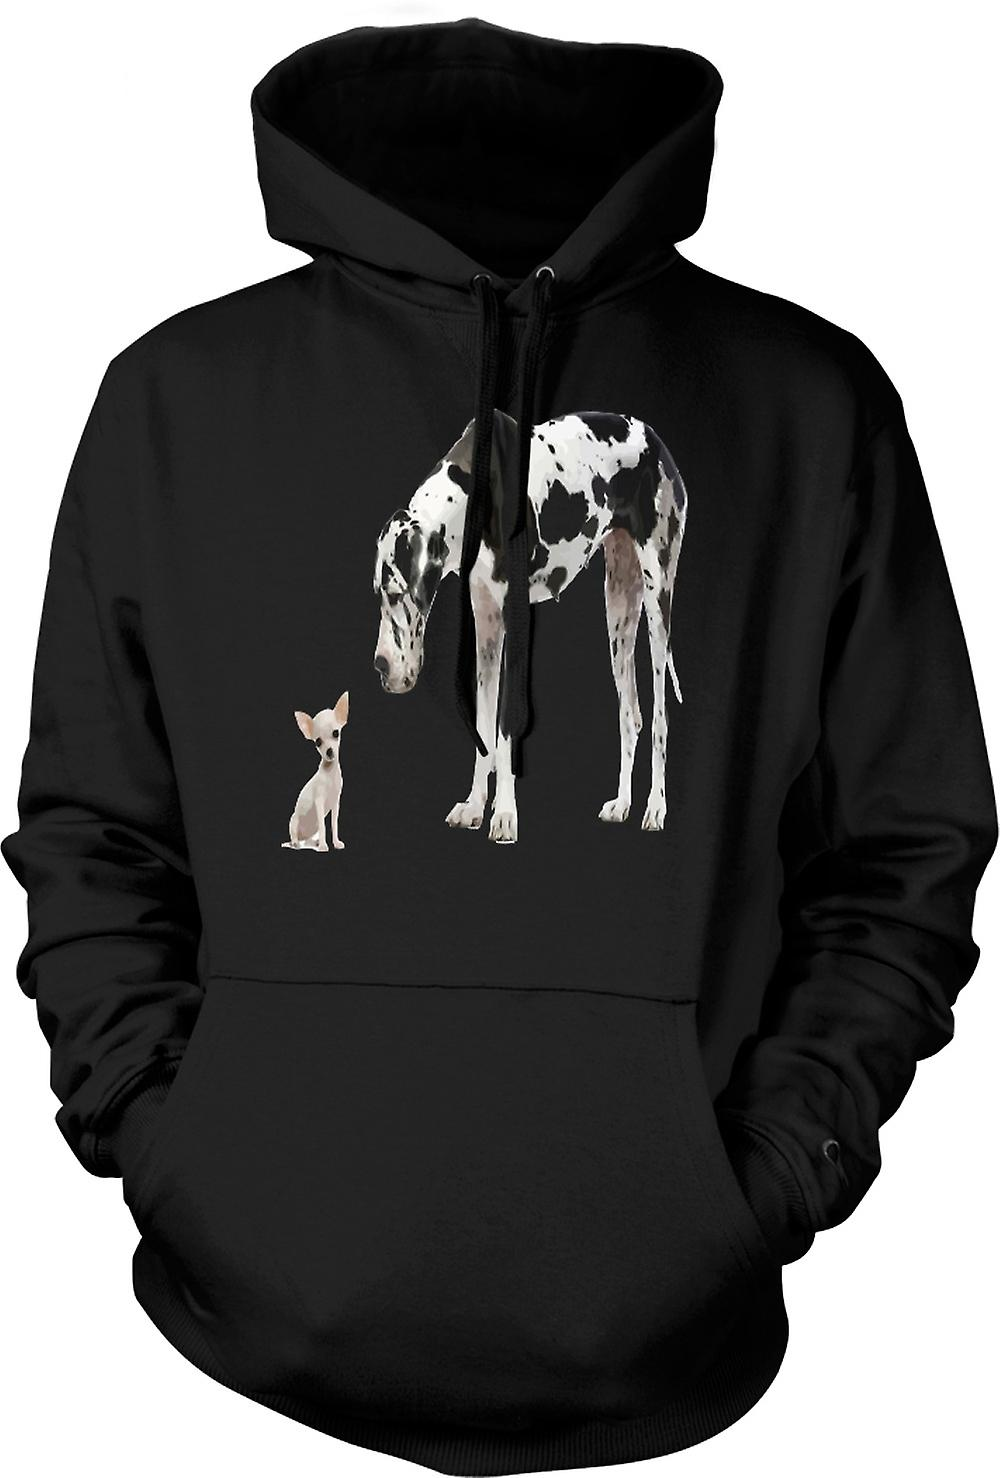 Mens Hoodie - Great Dane And Chihuahua Cut Pet Dogs